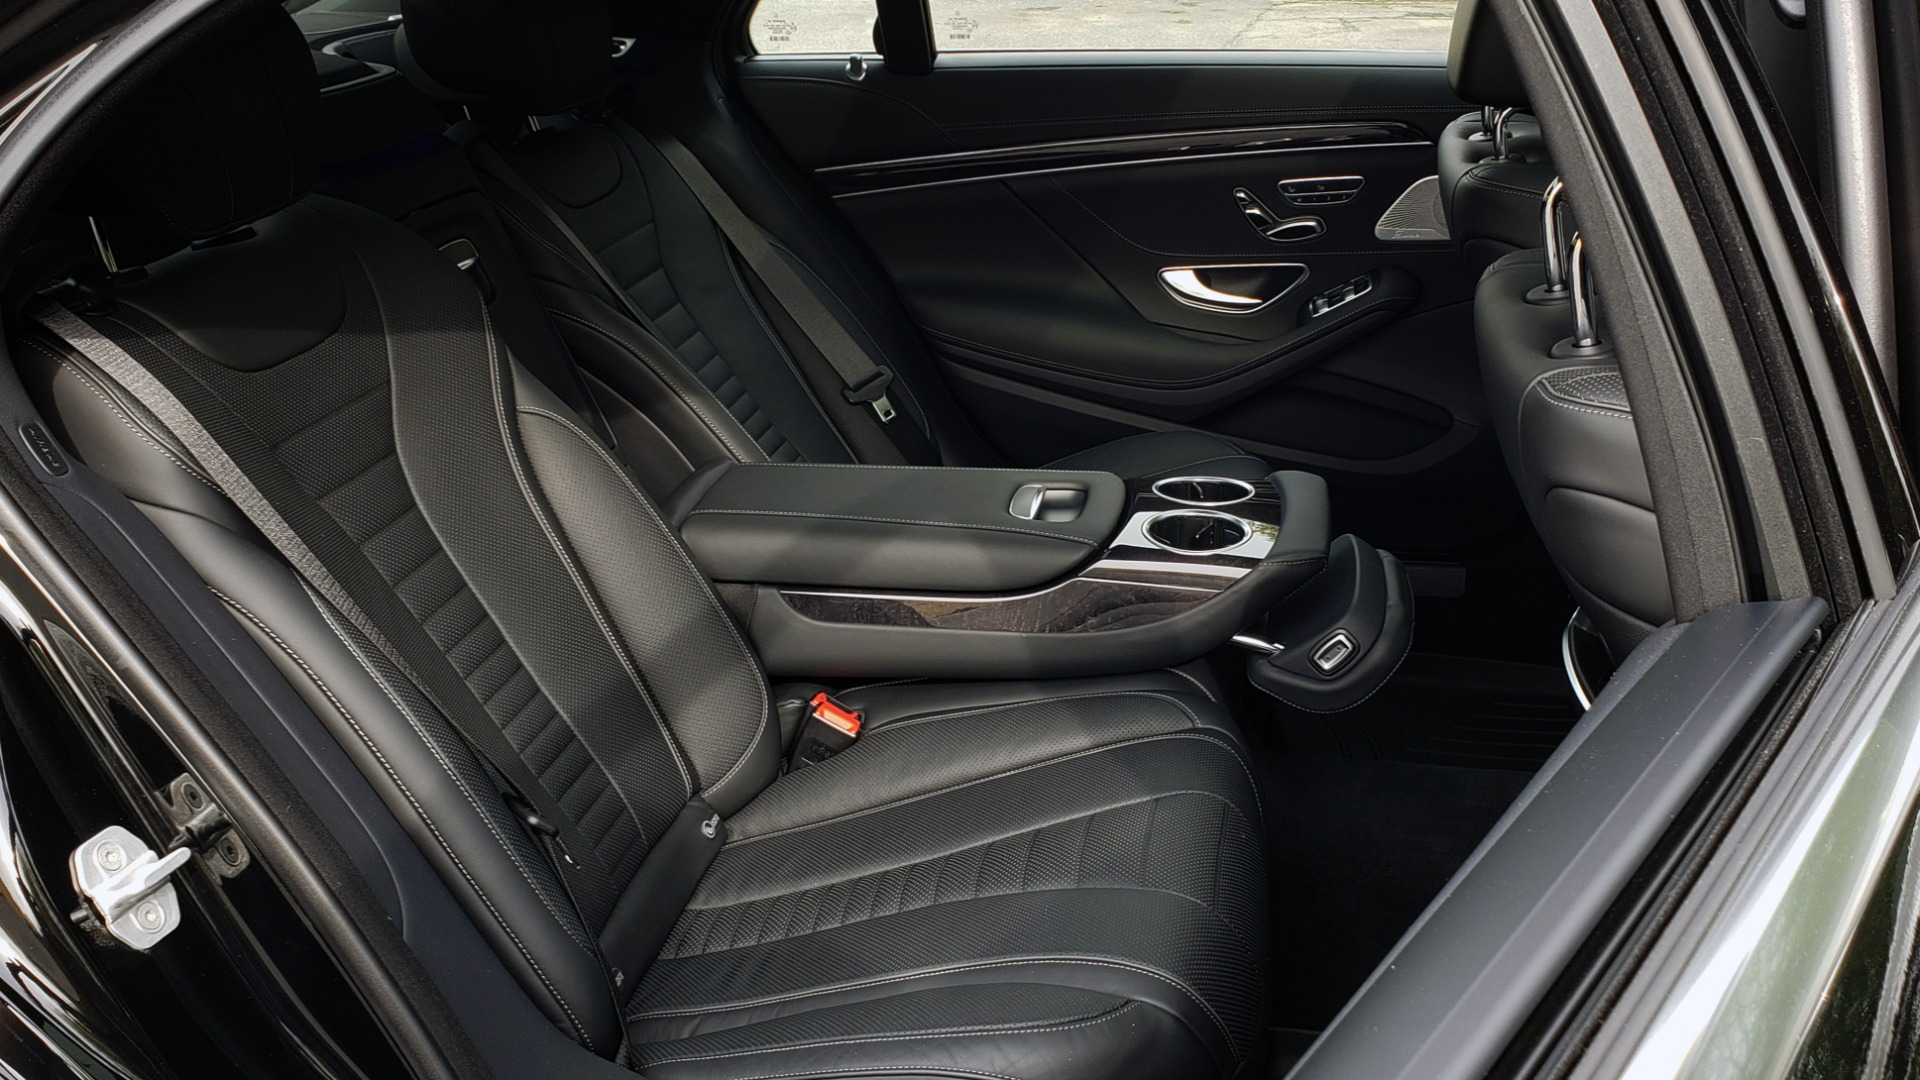 Used 2017 Mercedes-Benz S-CLASS S 550 4MATIC SPORT / PREM PKG / WARMTH & COMFORT / KEYLESS-GO for sale Sold at Formula Imports in Charlotte NC 28227 85